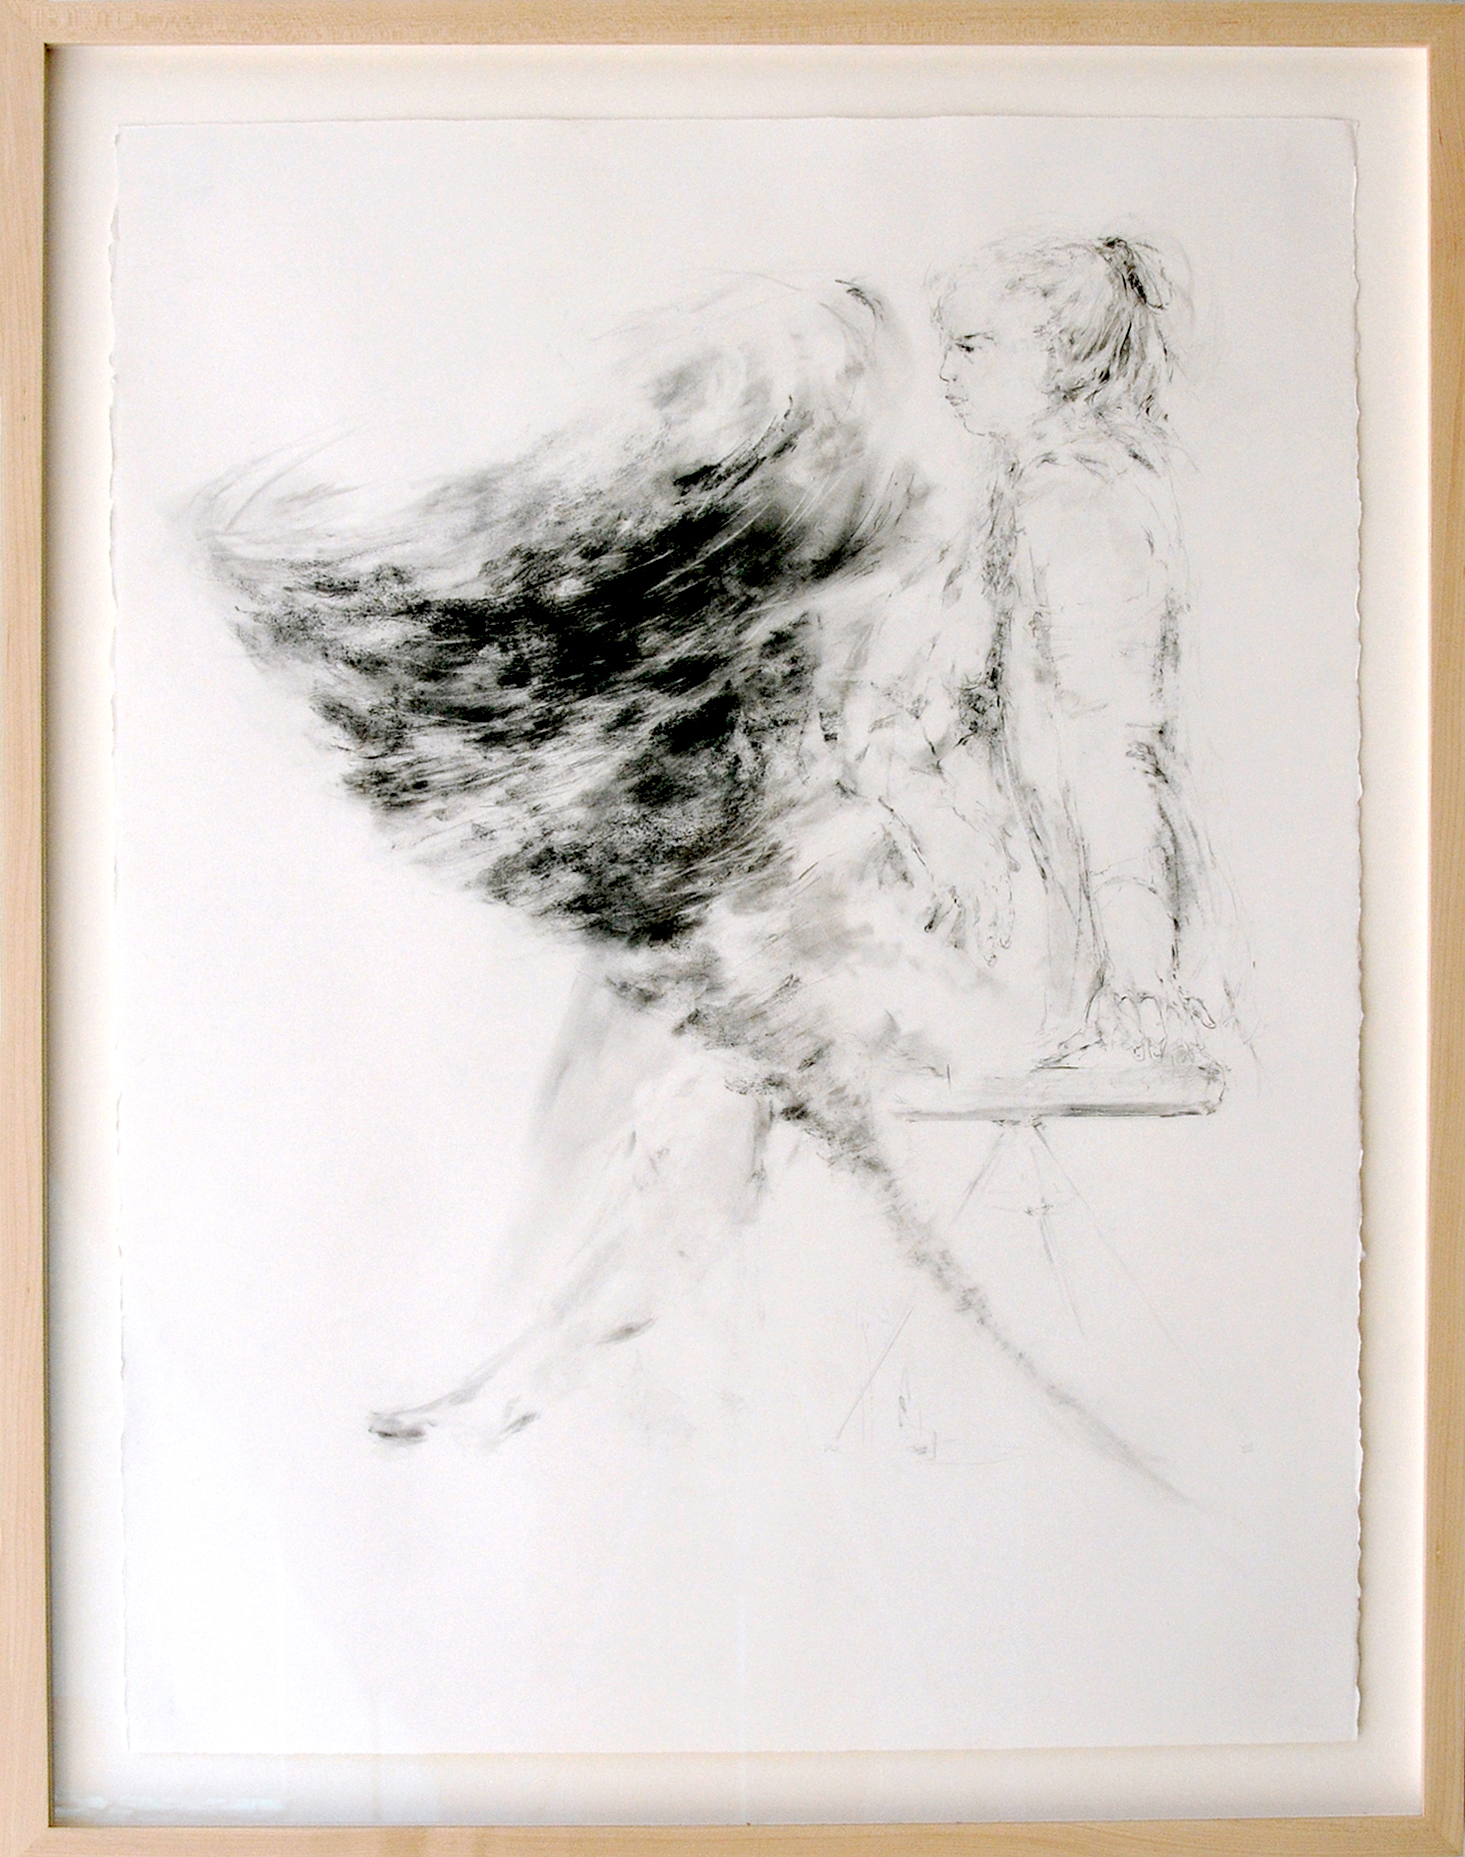 Sarah Creagen, All I Thought About Was Time, 30 x 22 inches, graphite on watercolour paper, 2015.jpeg